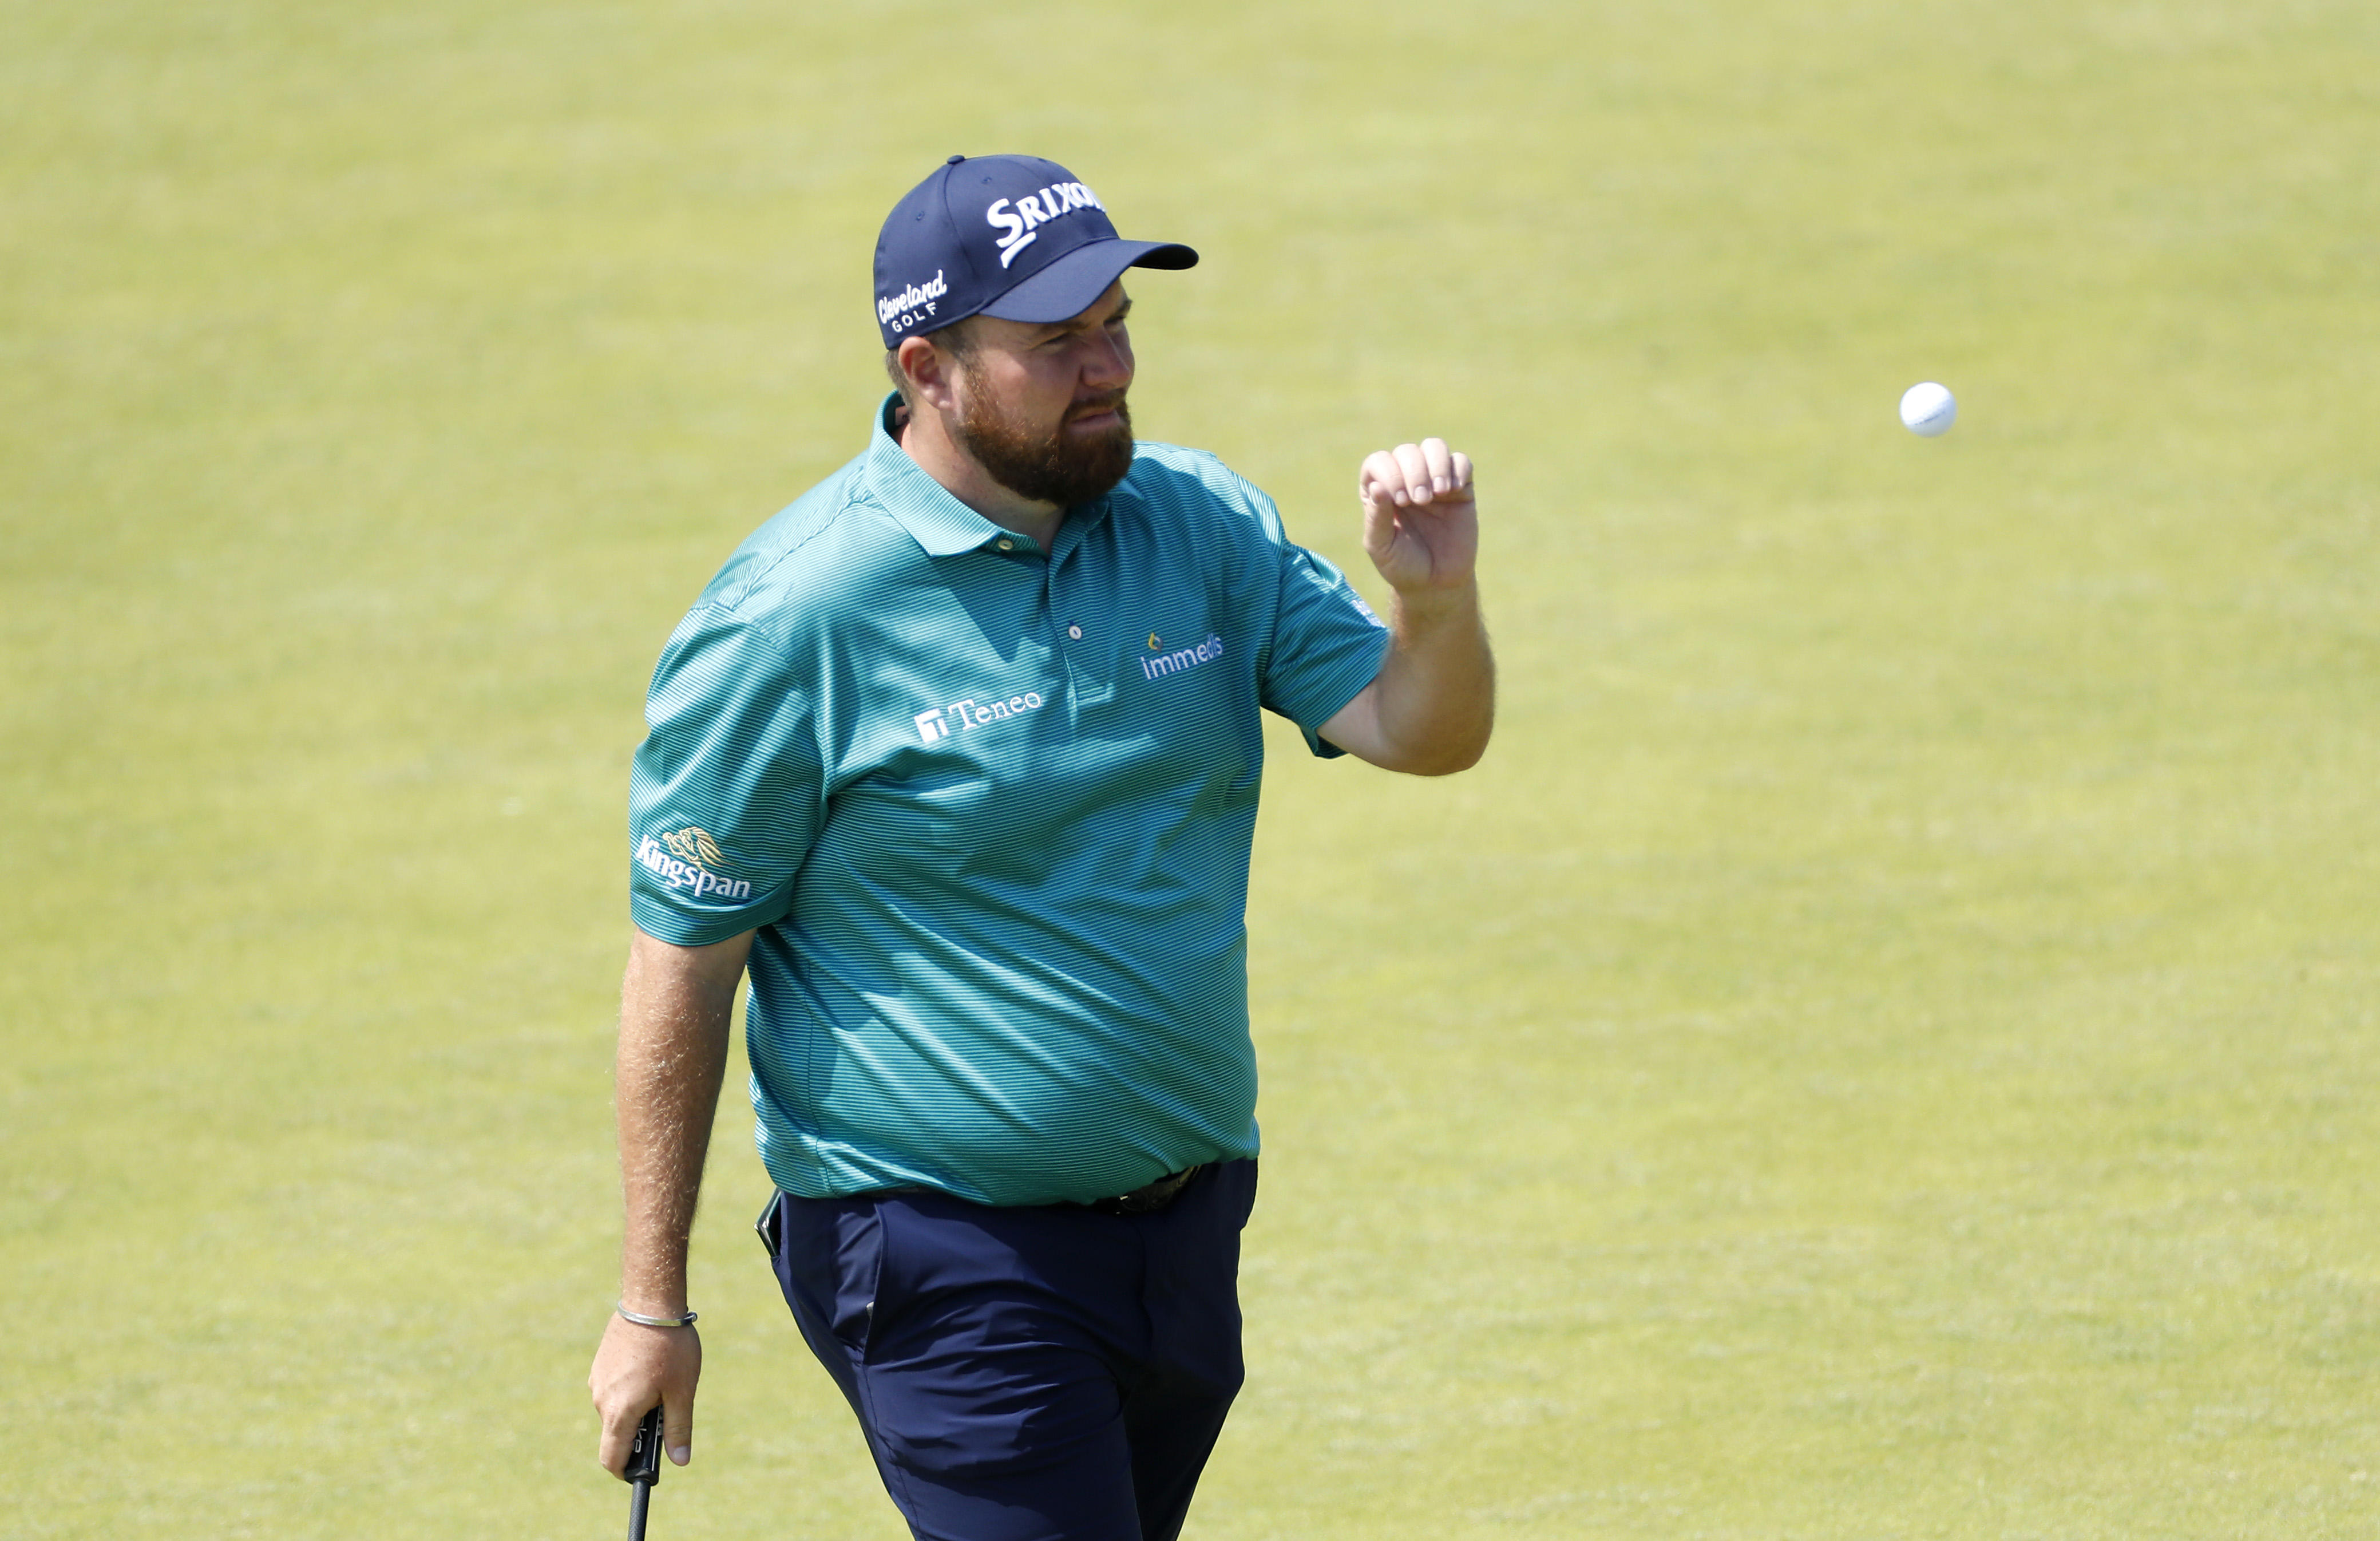 Shane Lowry of Ireland walks off the 3rd green during a practice round ahead of The 149th Open at Royal St George's Golf Club on July 13, 2021 in Sandwich, England.